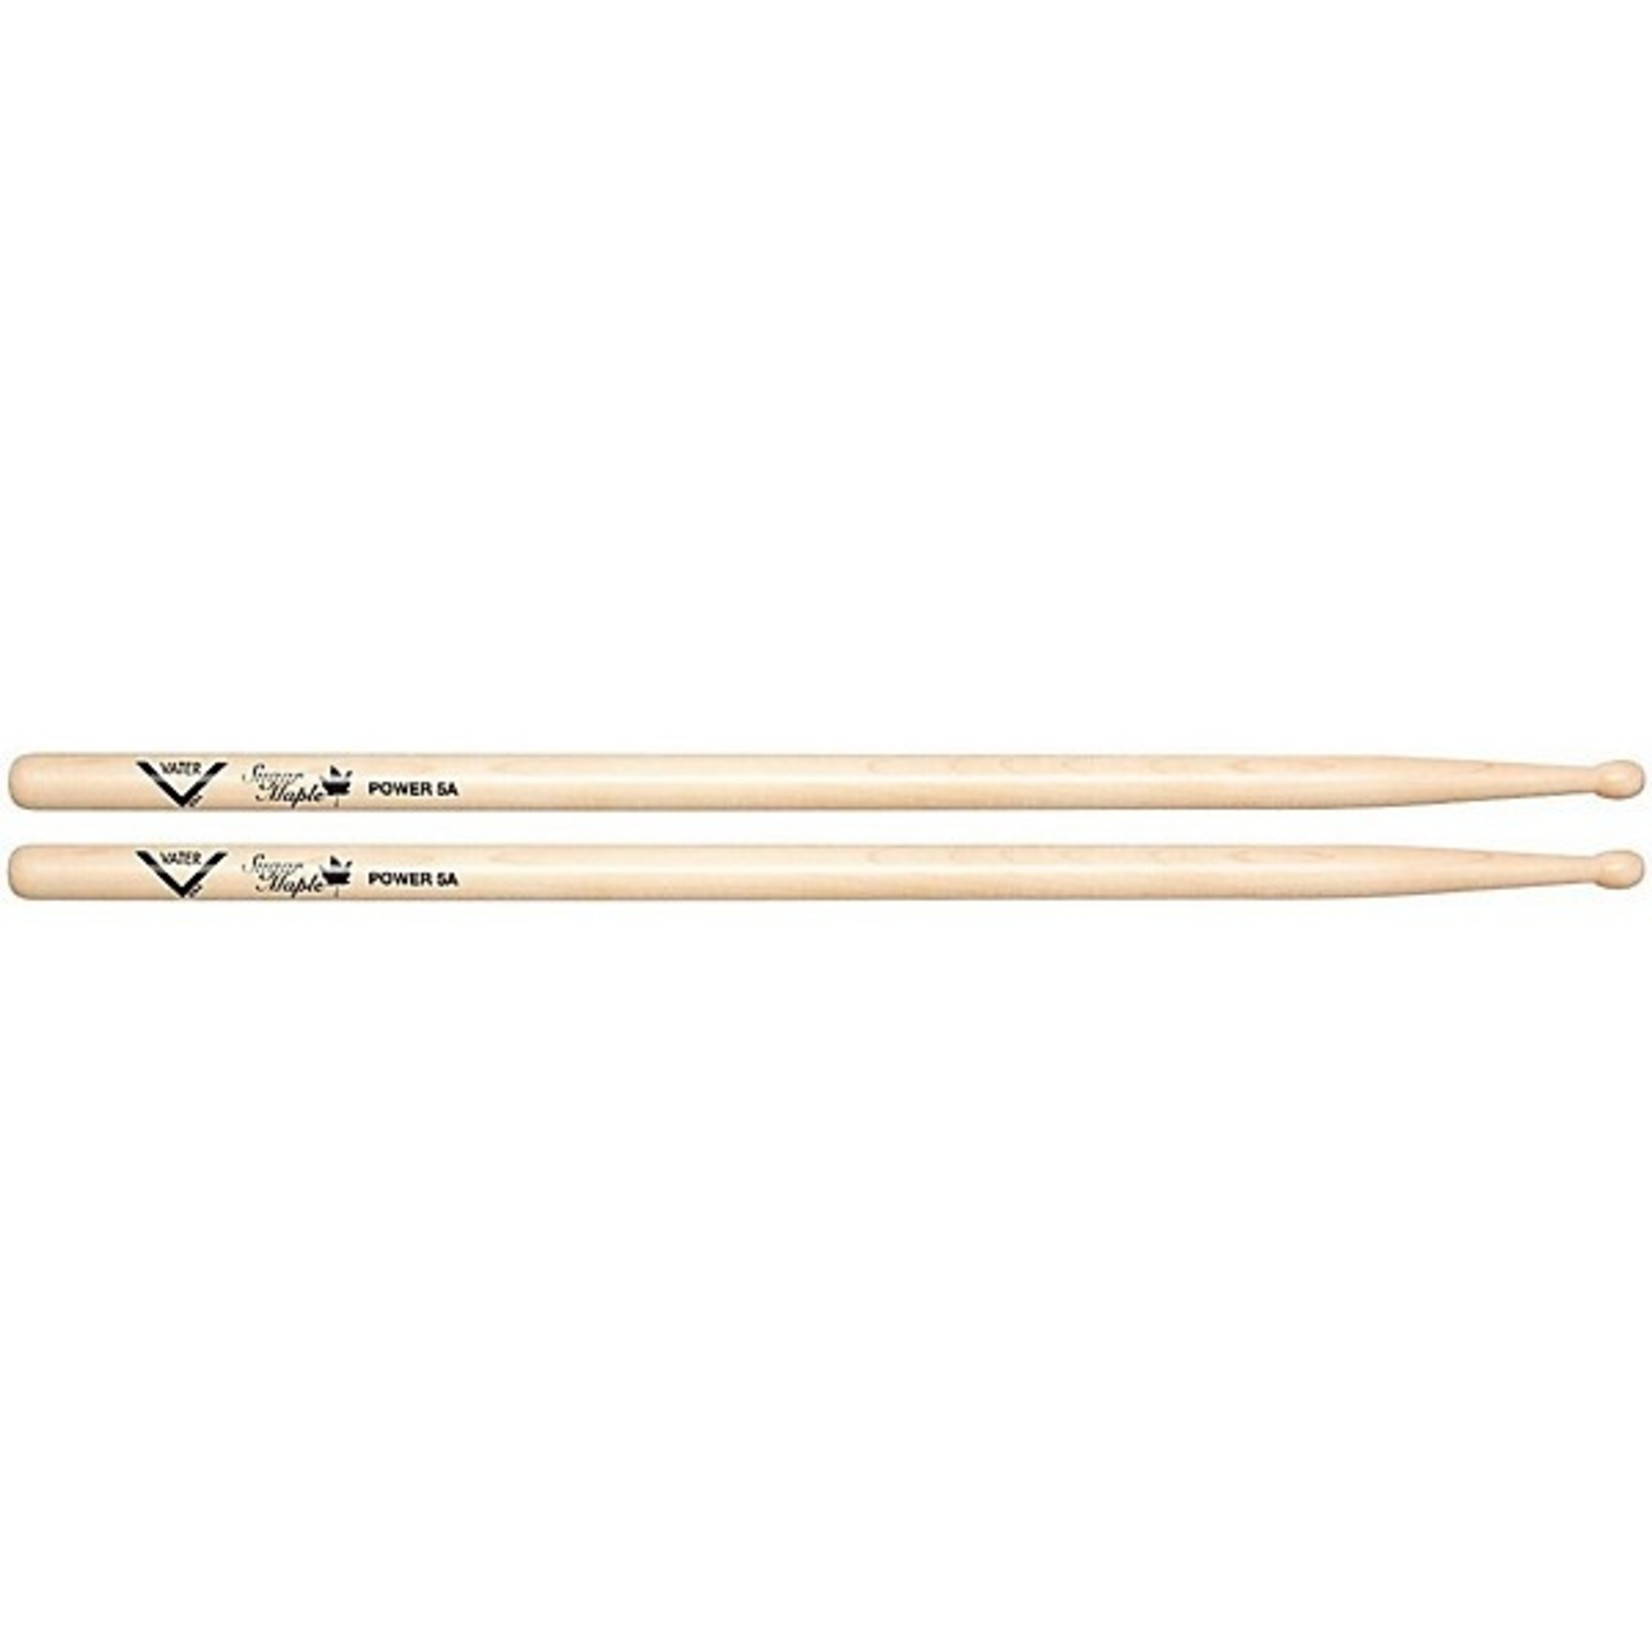 Vater Vater Sugar Maple  Power 5A